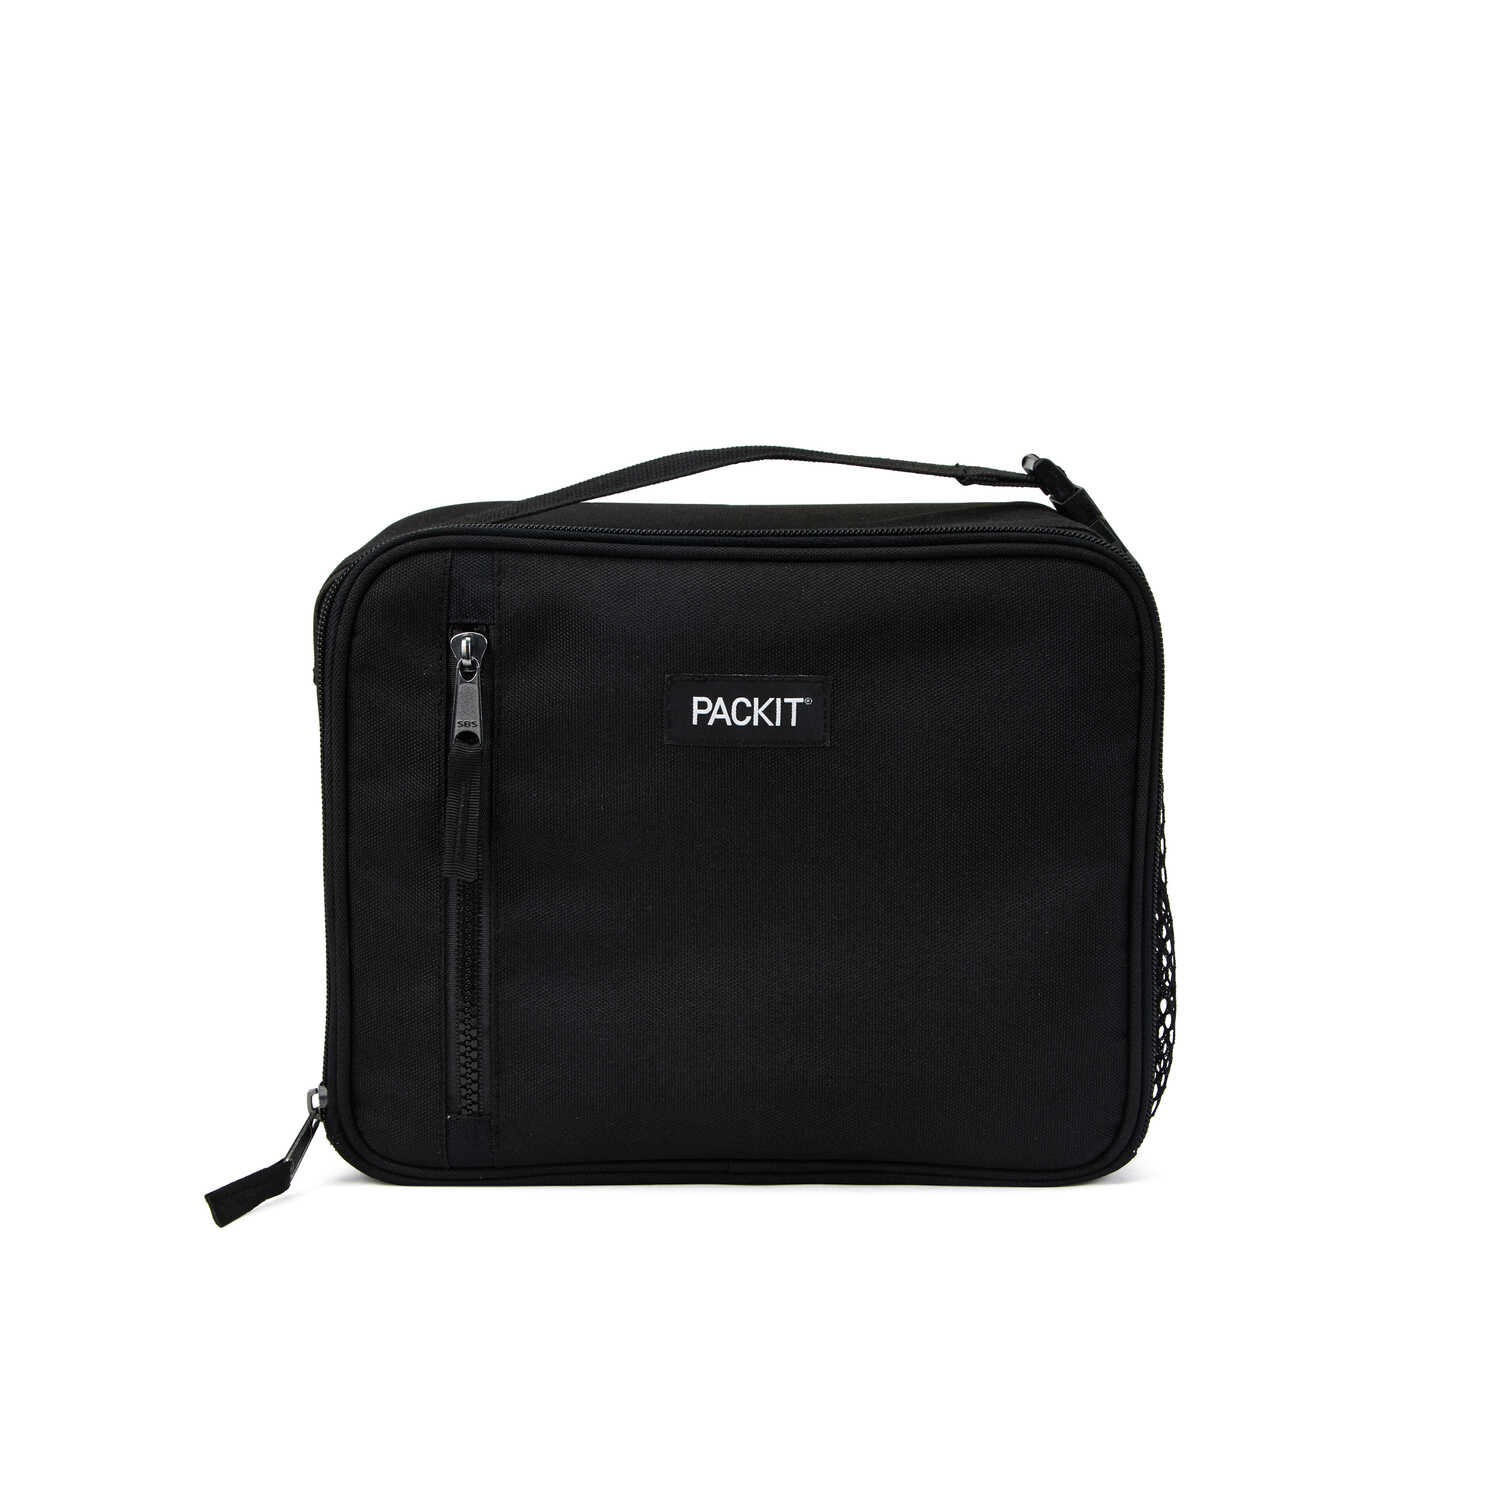 PACKIT  Lunch Bag Cooler  Black  1 pk